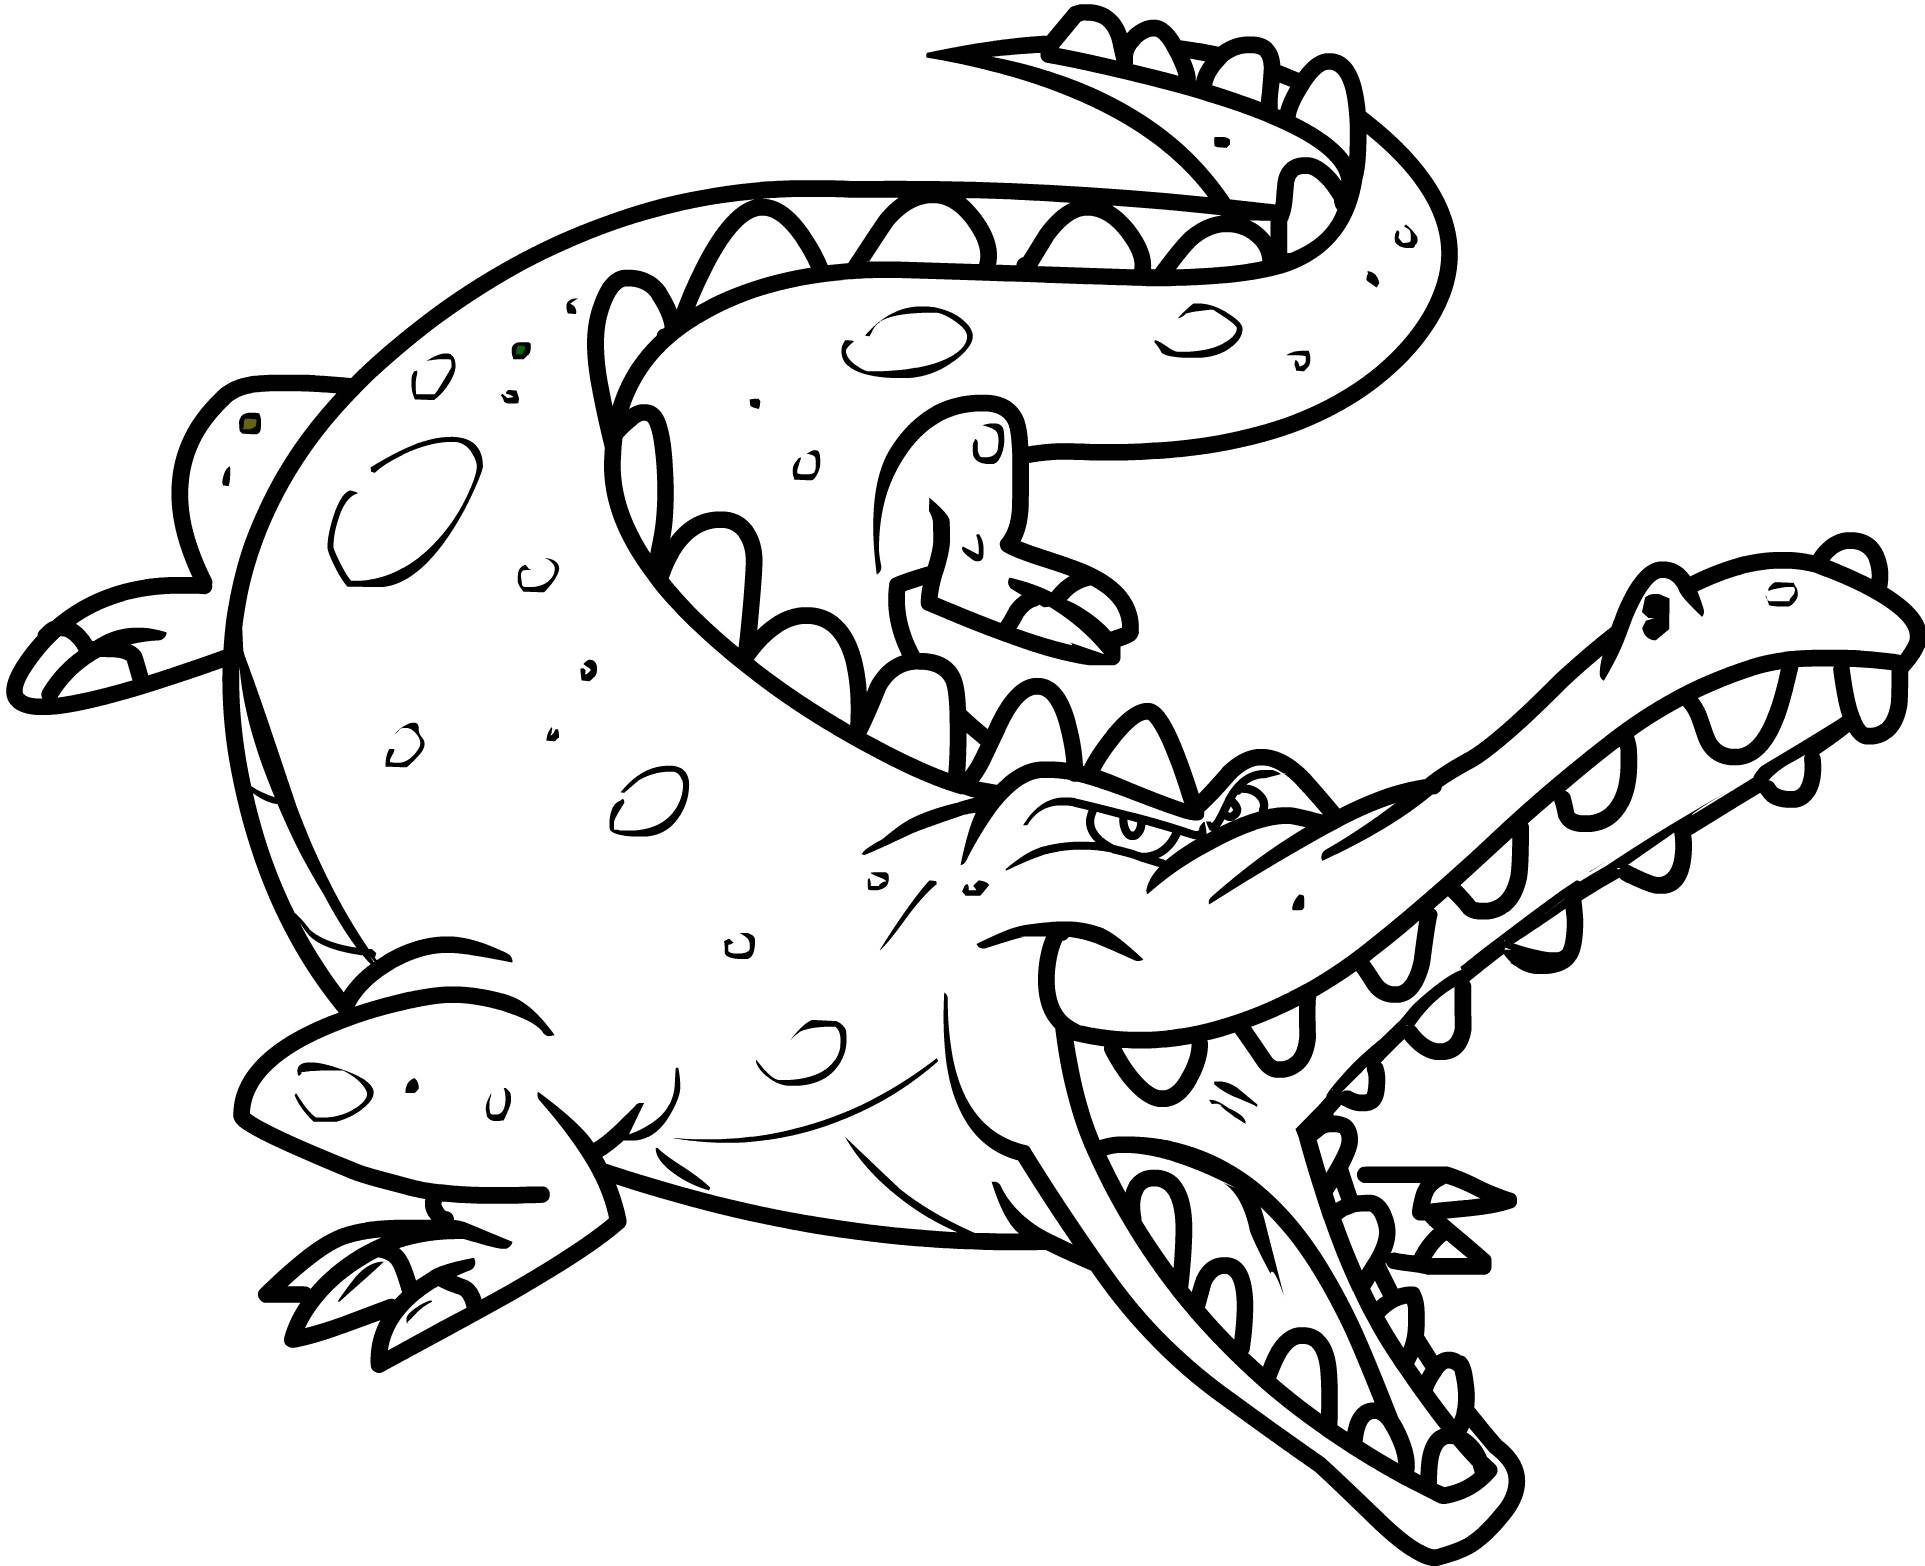 Uncategorized Crocodile Coloring Pages To Print free printable crocodile coloring pages for kids to print